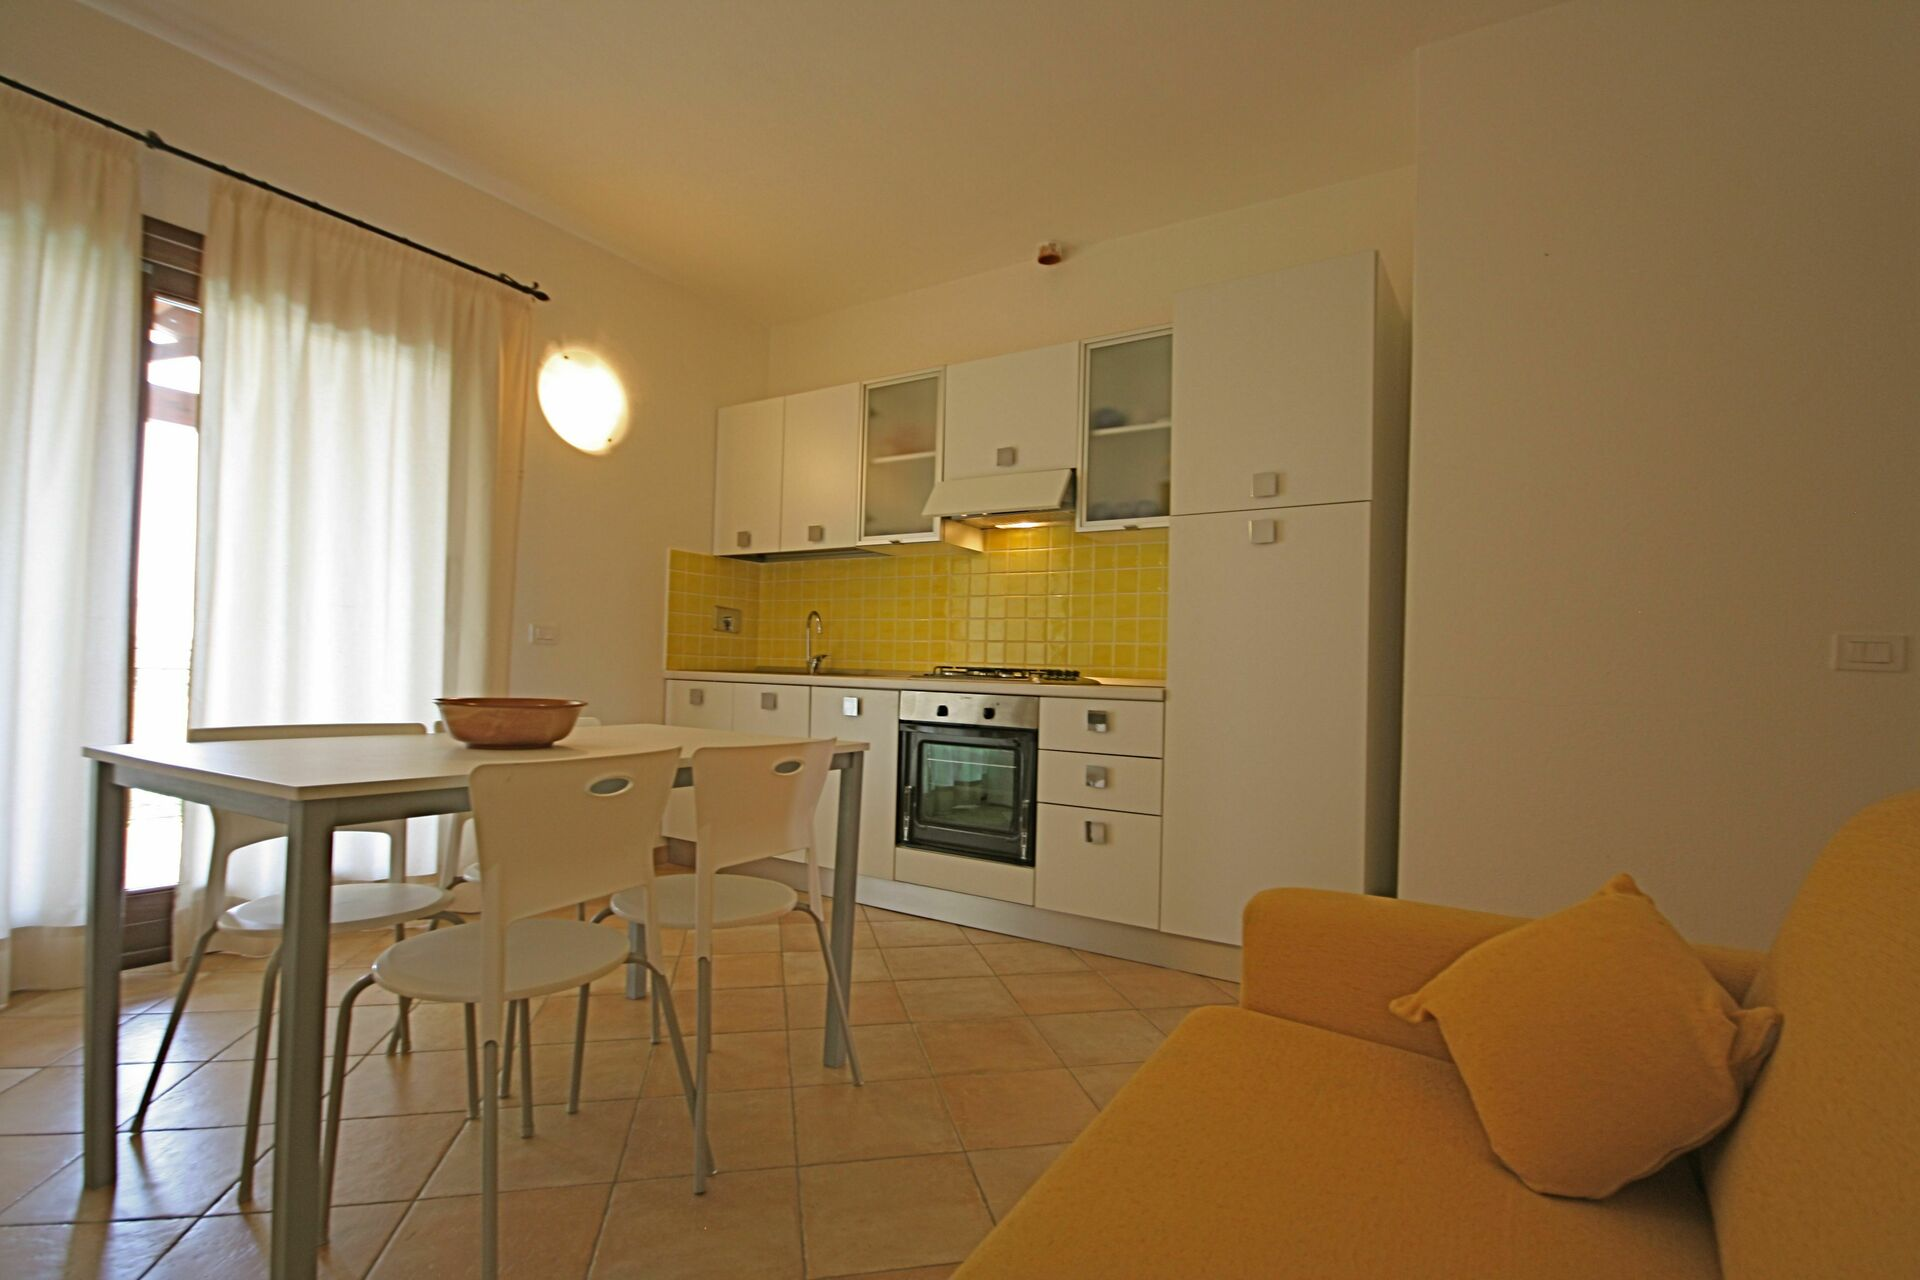 Apartments in Olbia buy 60000